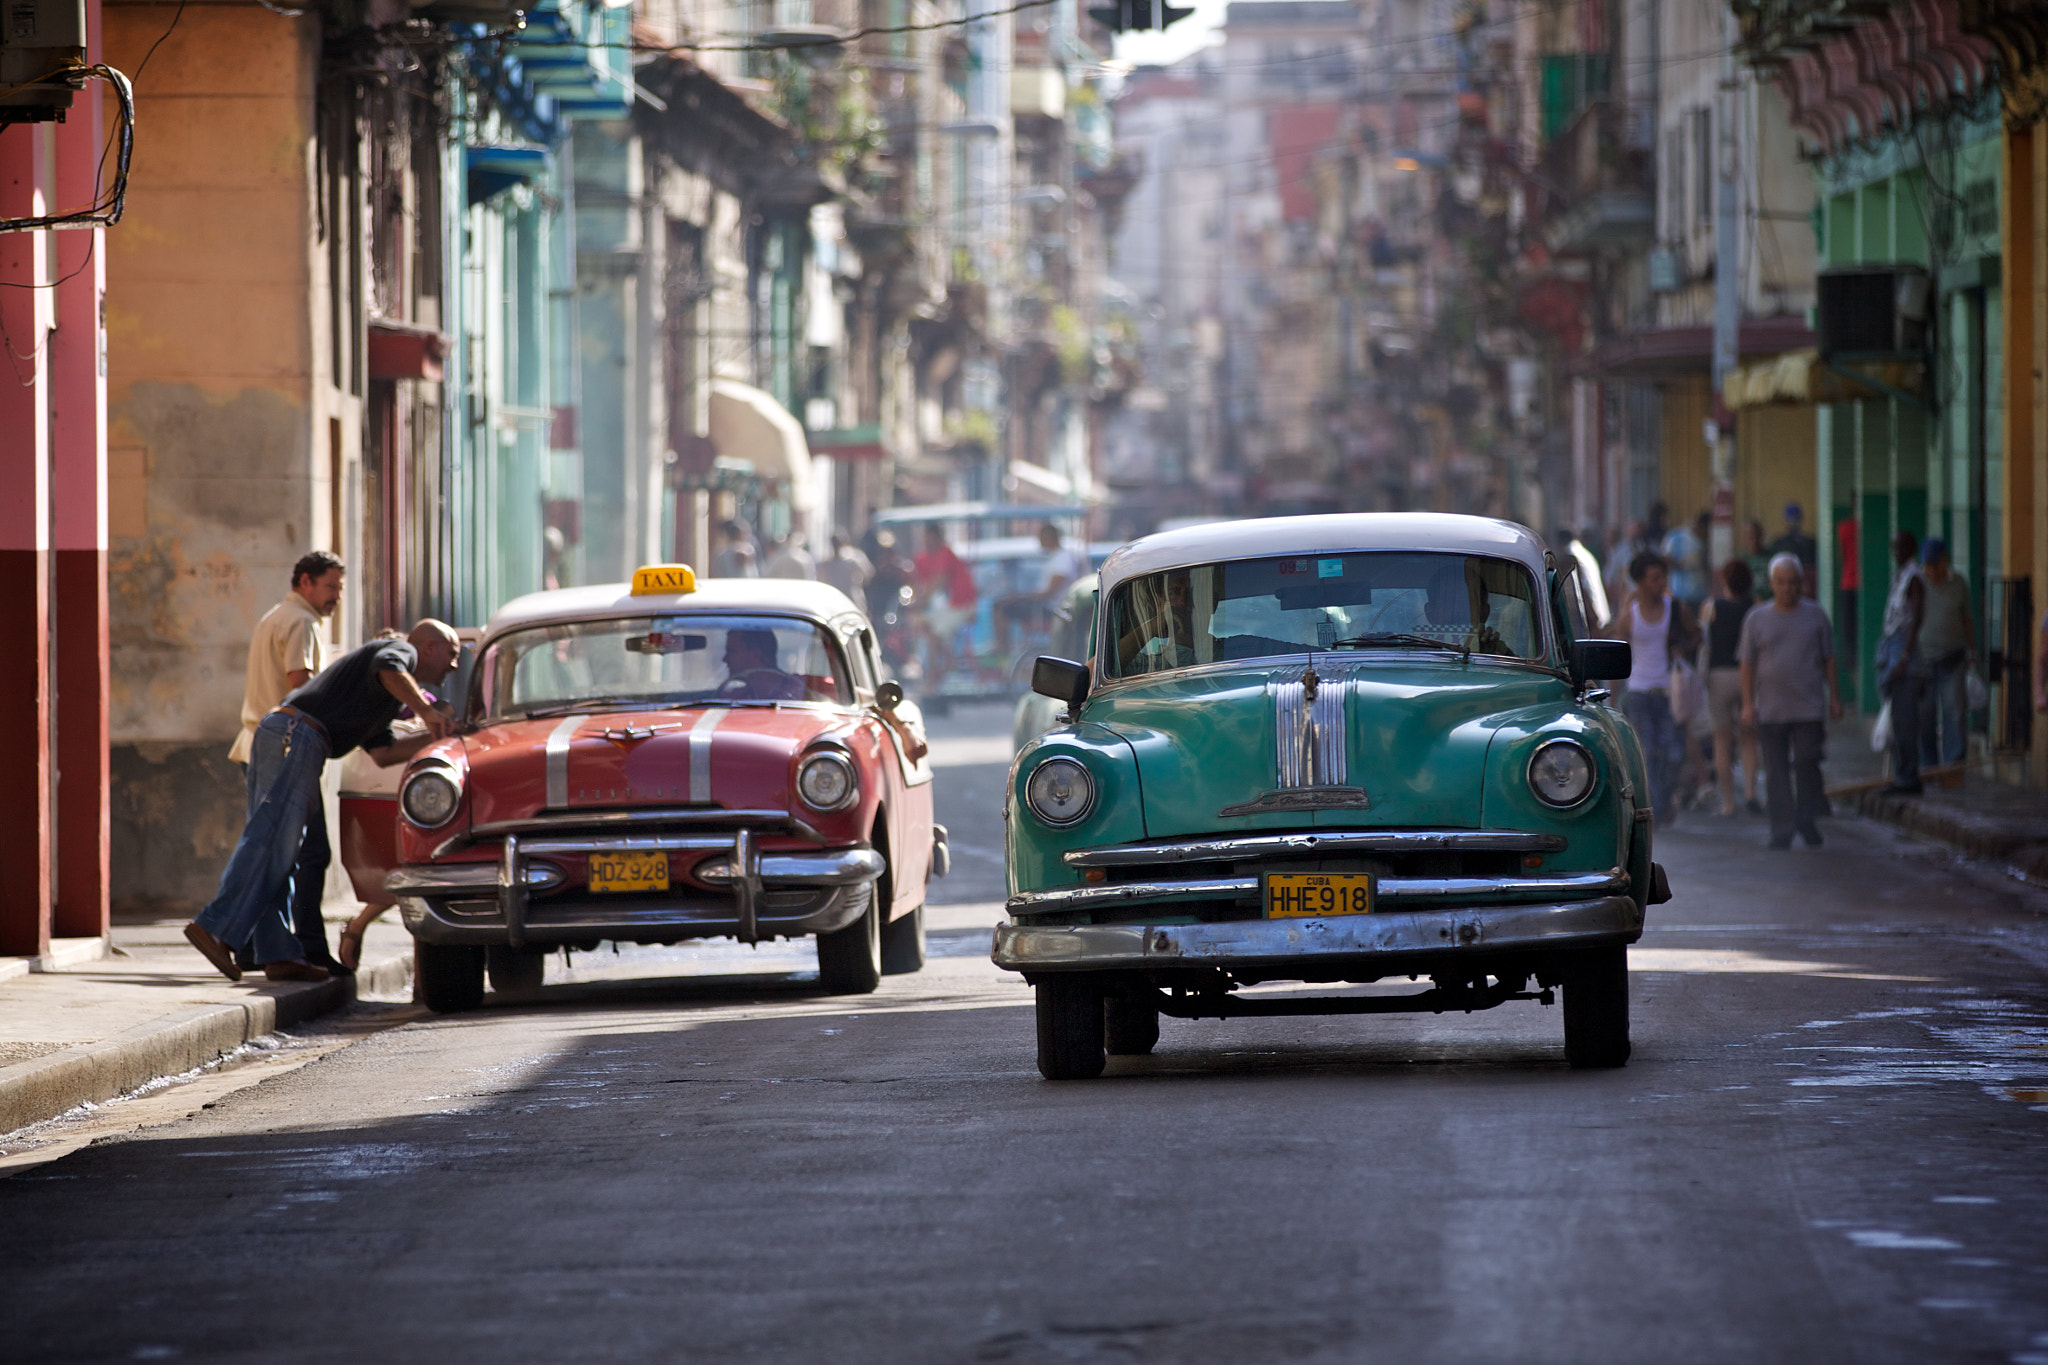 Photograph Havana, Cuba by Bas Boerman on 500px